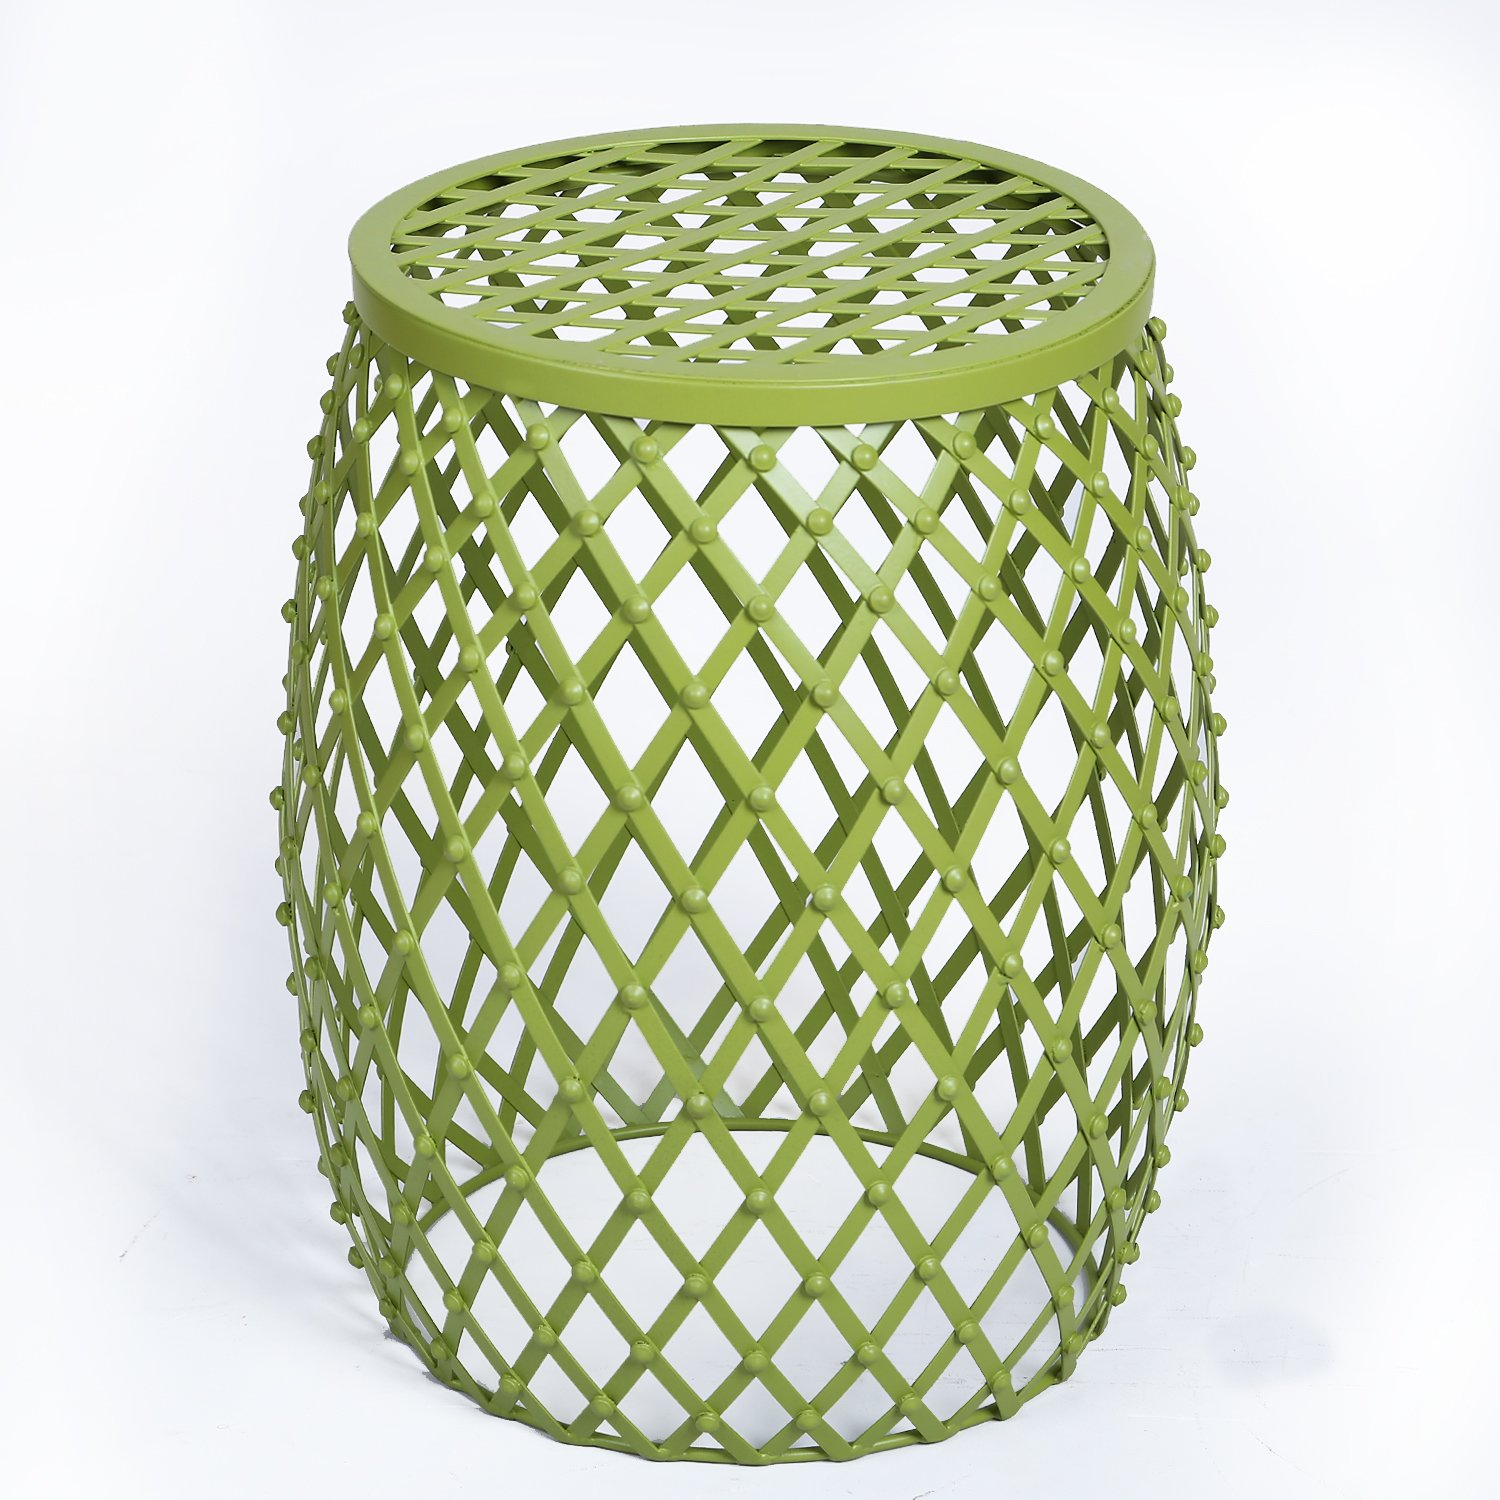 Adeco Home Garden Accents Wire Round Iron Metal Stool Side End Table Plant Stand, Hatched Diamond Pattern, for Indoor Outdoor, Olive Drab Green